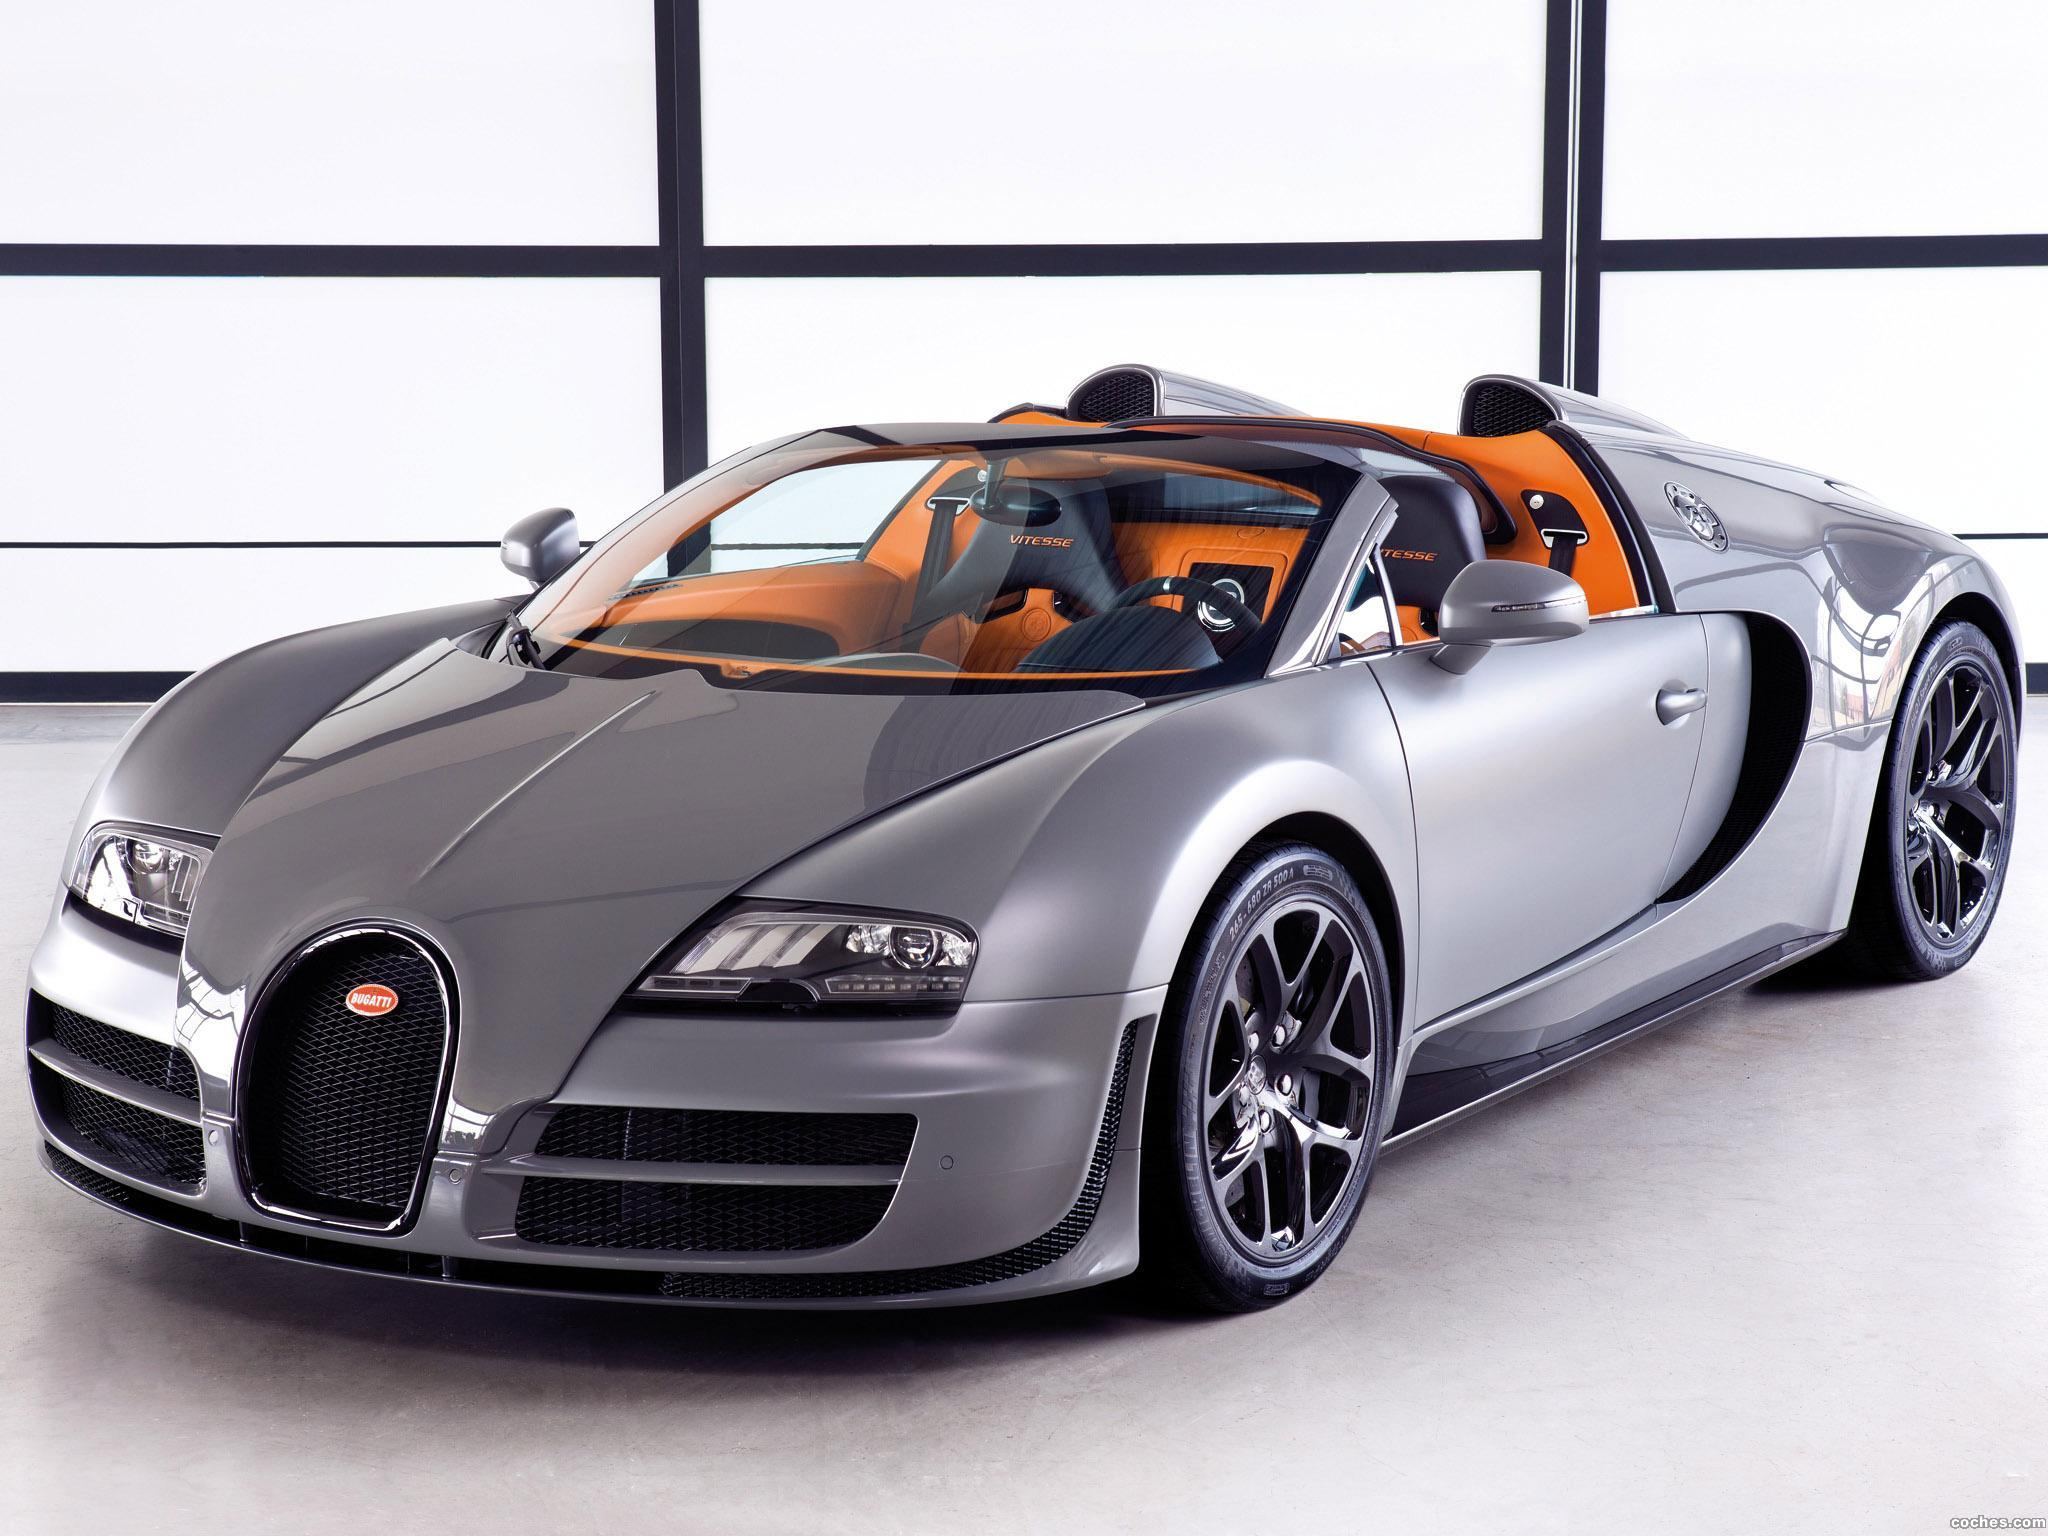 fotos de bugatti veyron grand sport roadster vitesse 2012 foto 5. Black Bedroom Furniture Sets. Home Design Ideas